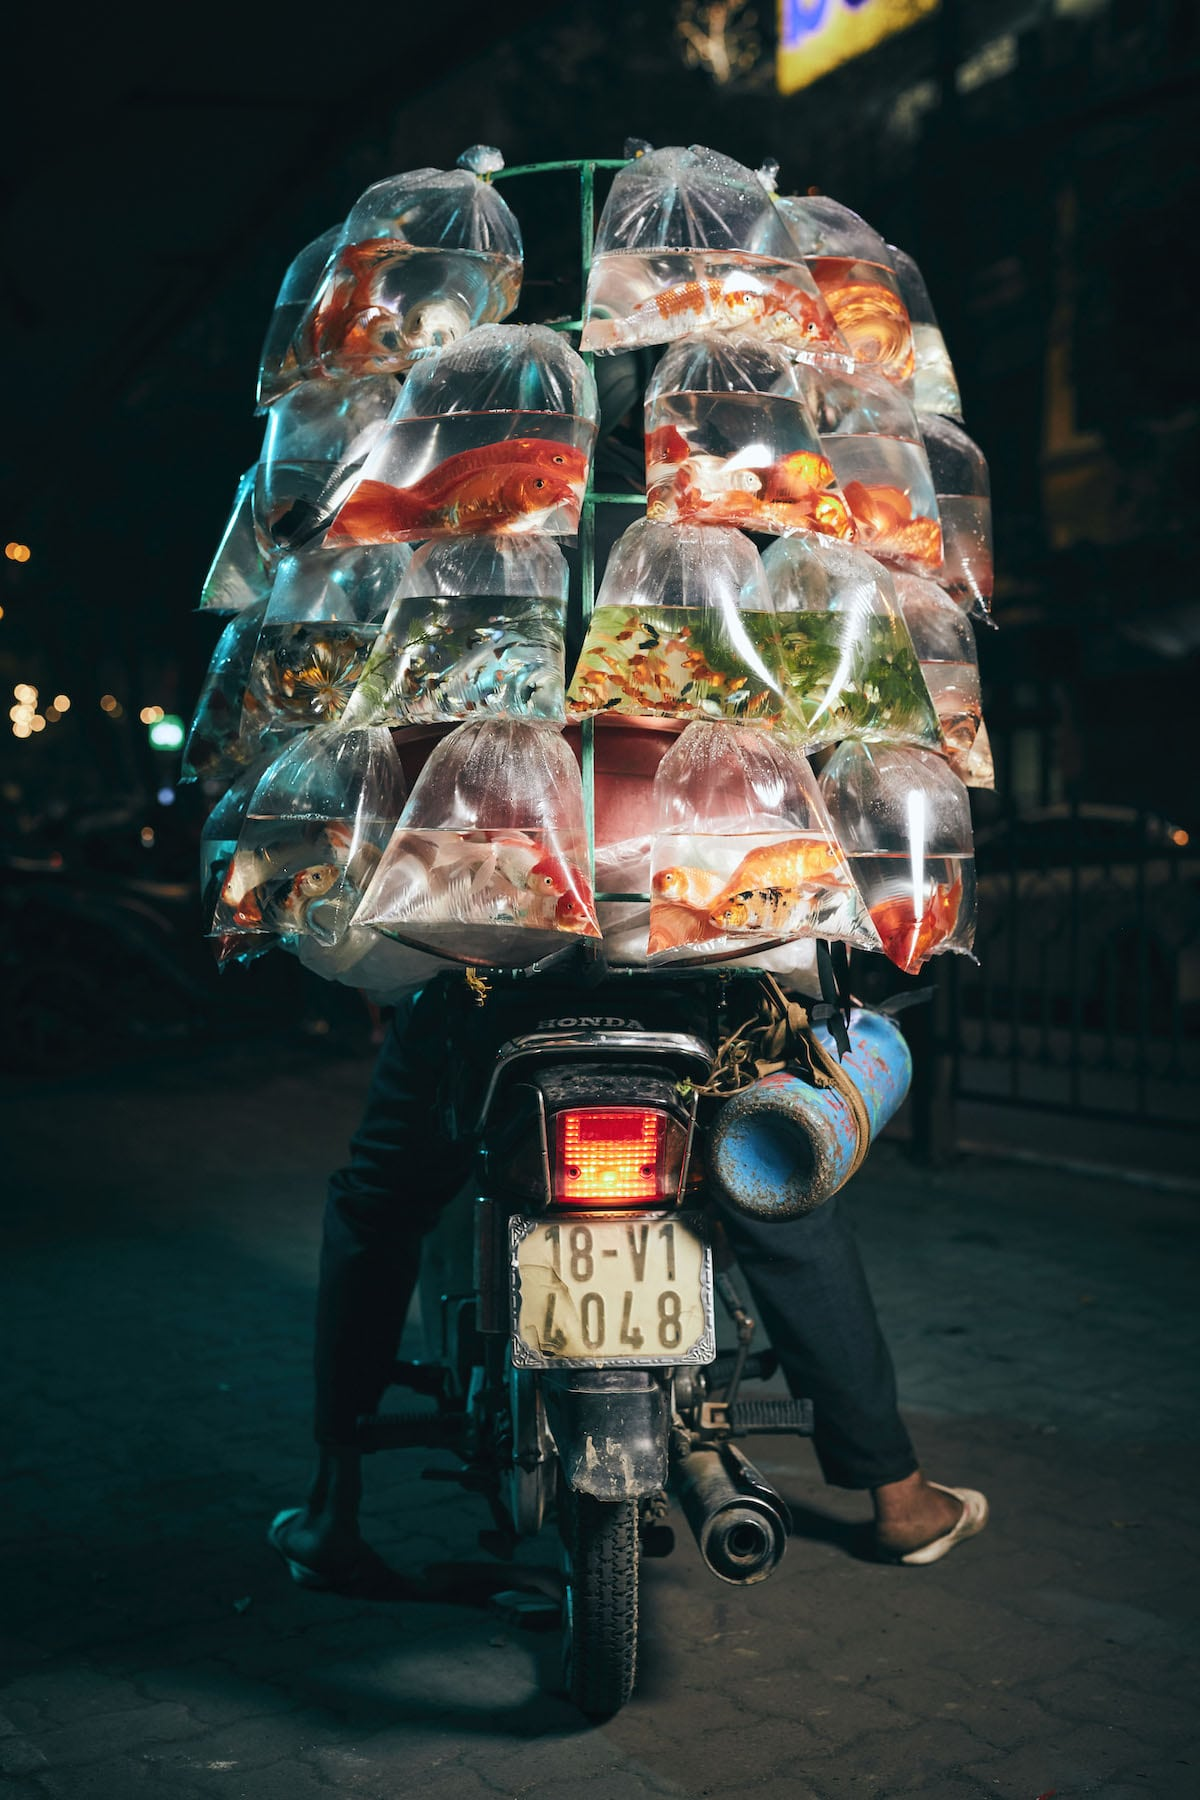 Homme transportant du poisson sur un scooter au Vietnam